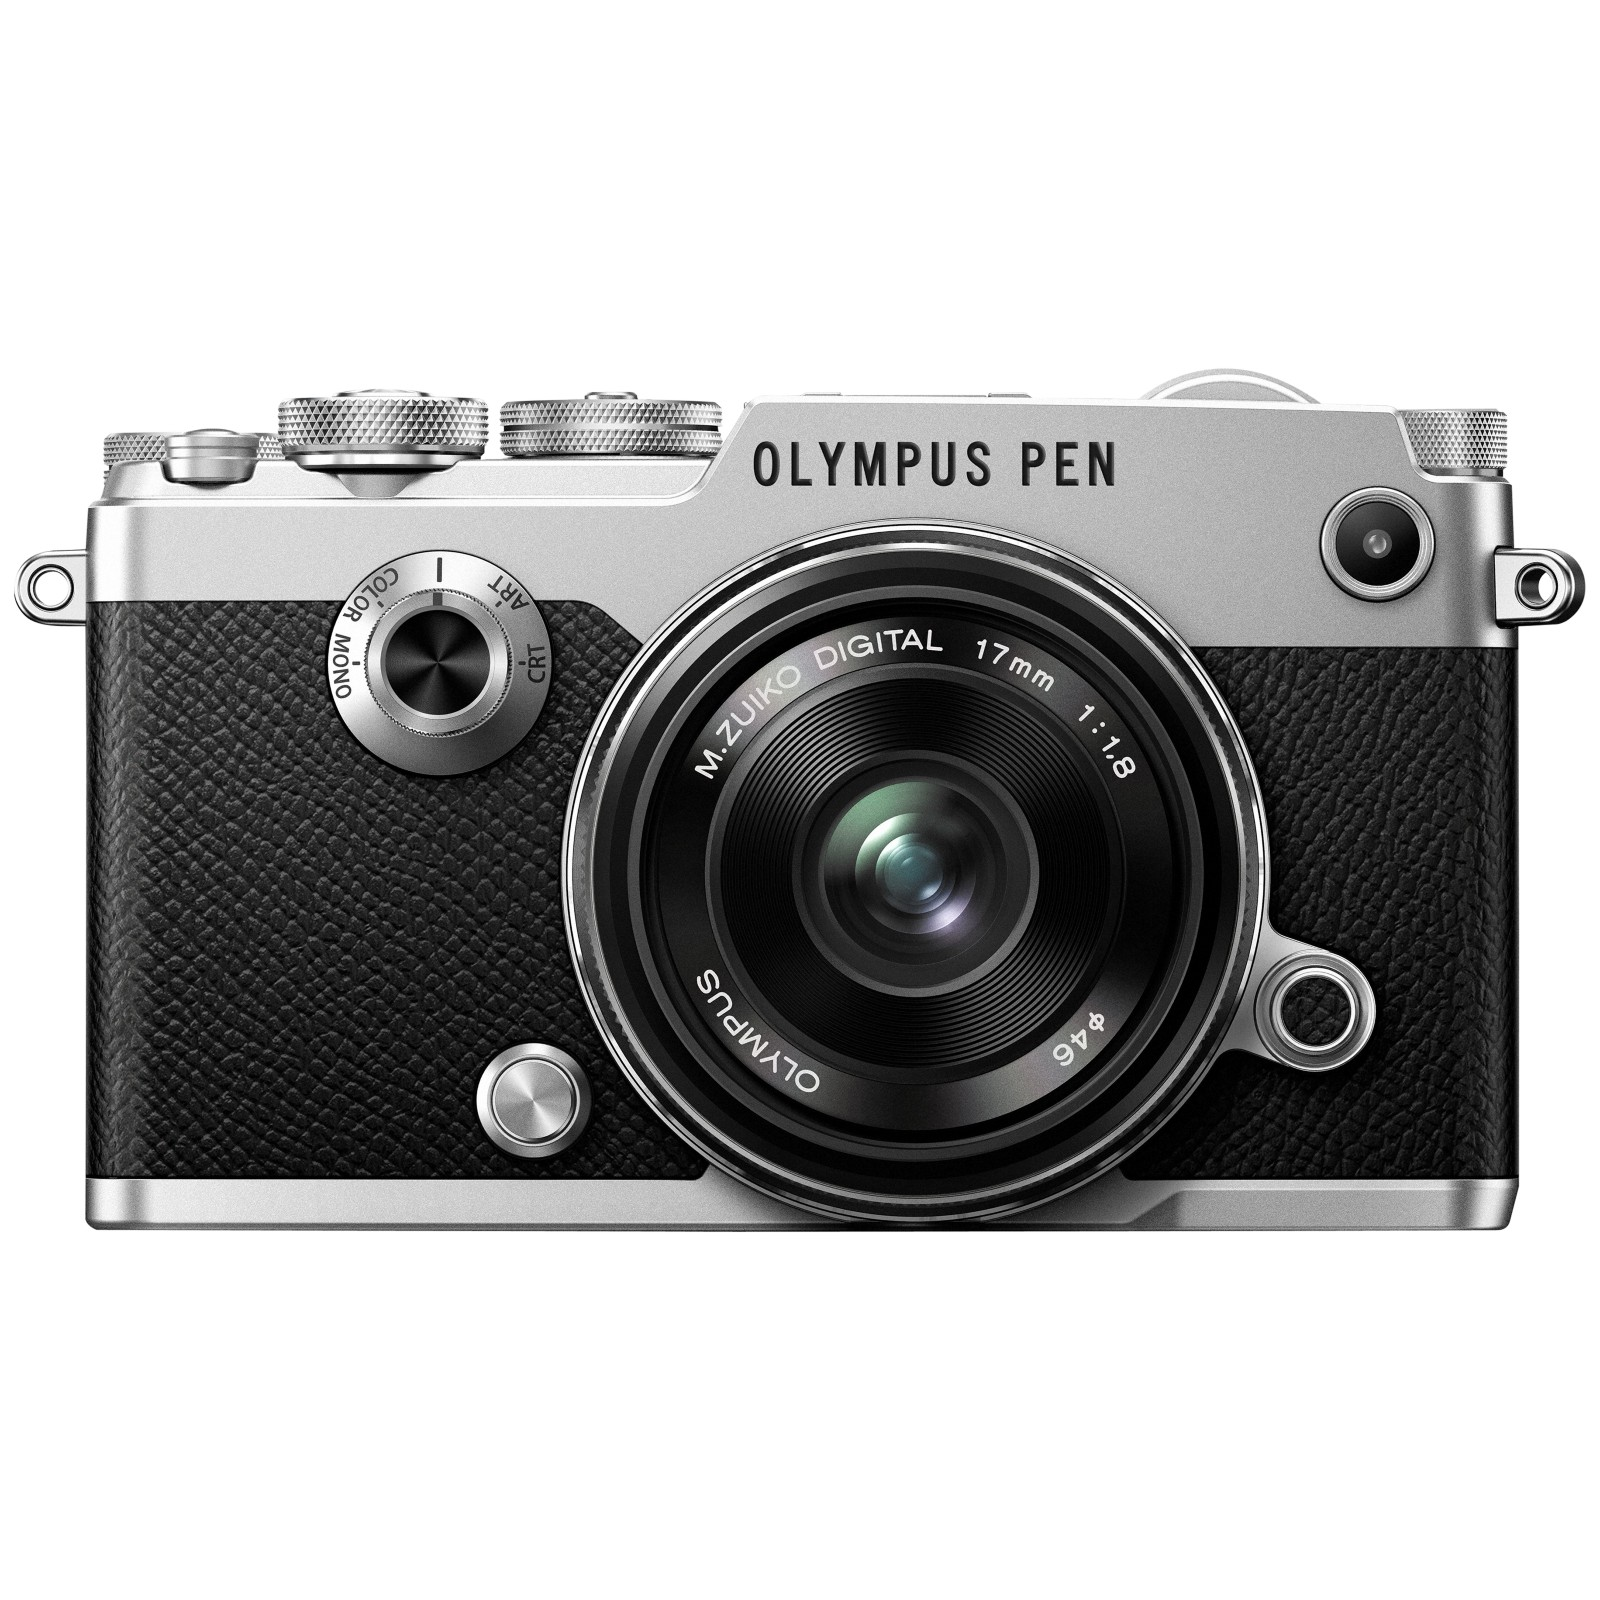 Olympus Pen F Compact System Camera With M.ZUIKO 17mm Prime Lens